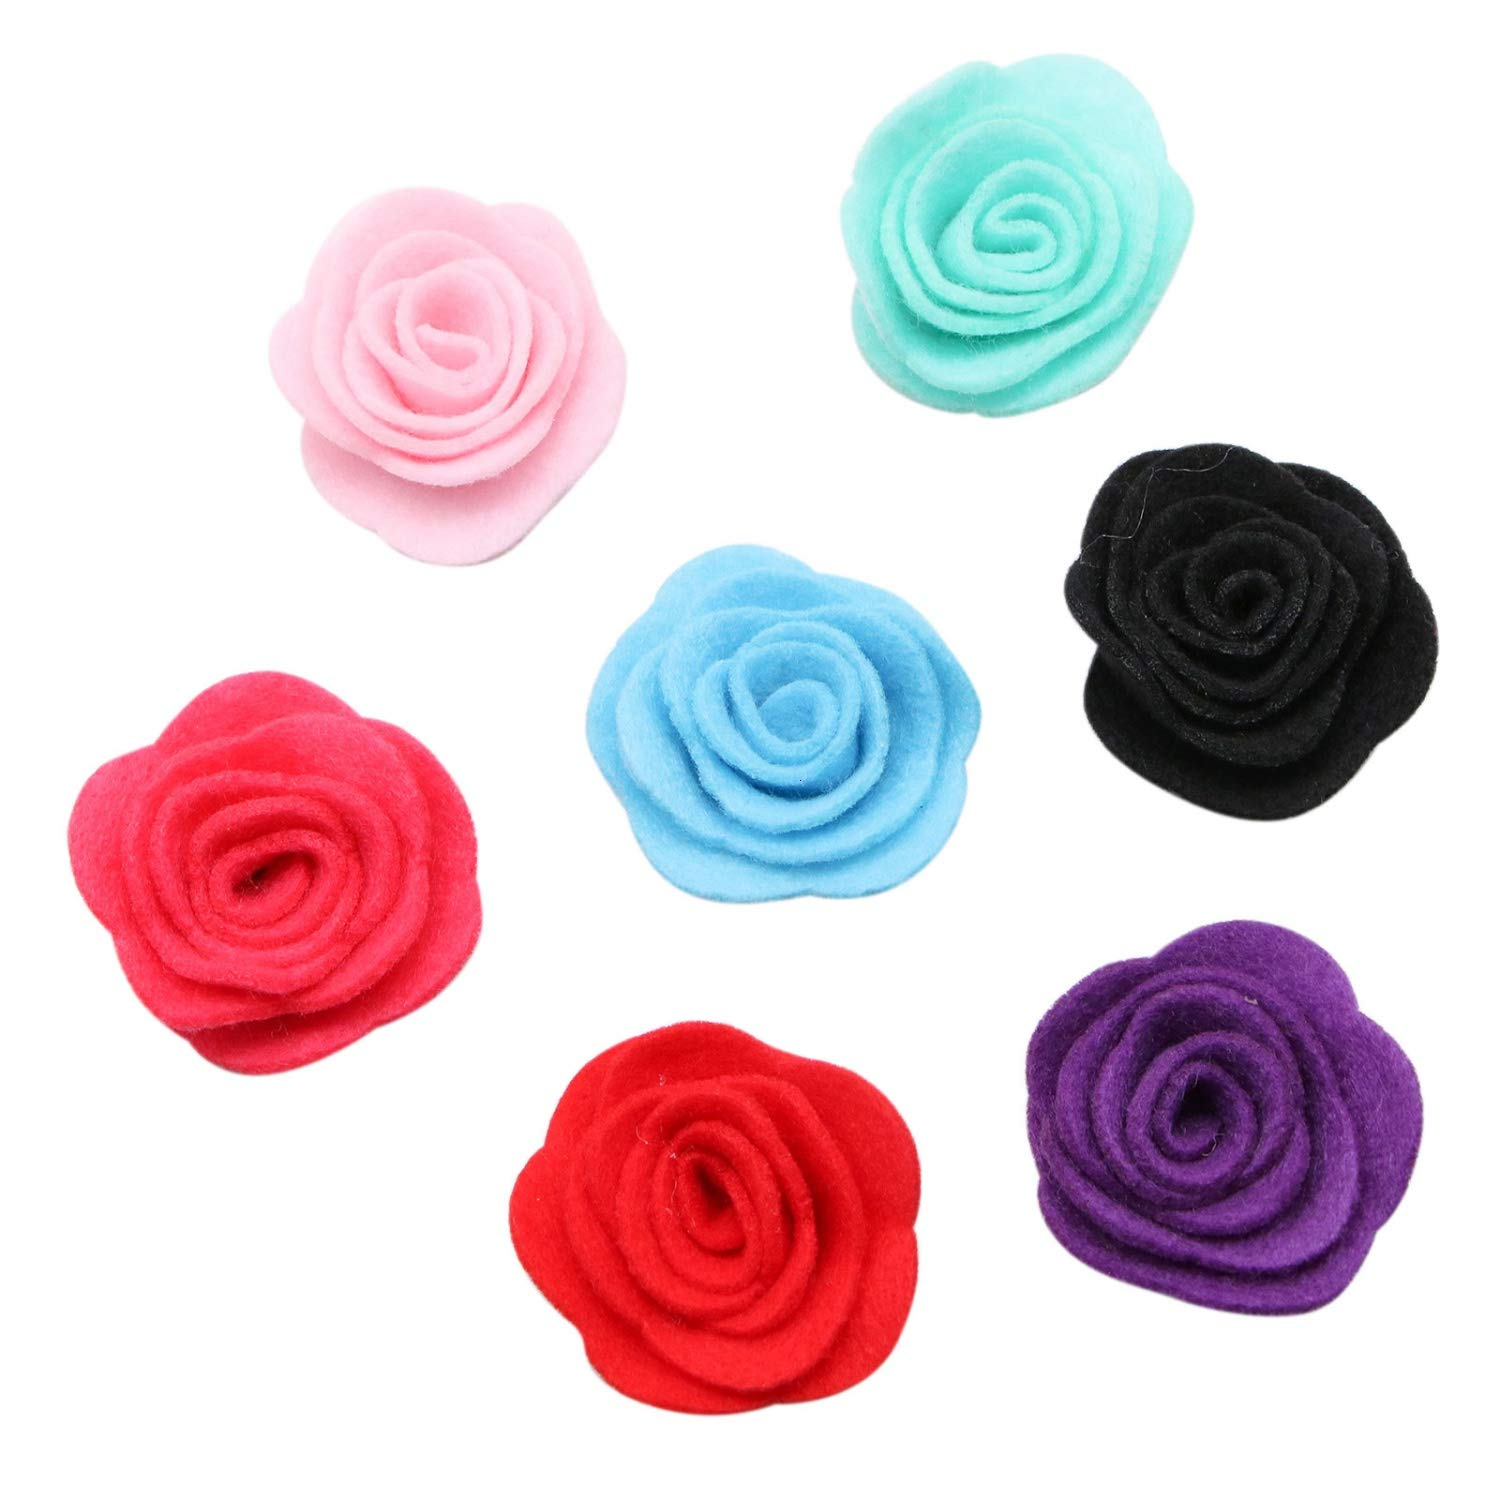 JETEHO 25 Pack Mixed Color Felt Rose Flowers Appliques Embellishments Ornaments for Crafts Sewing Hair Accessories